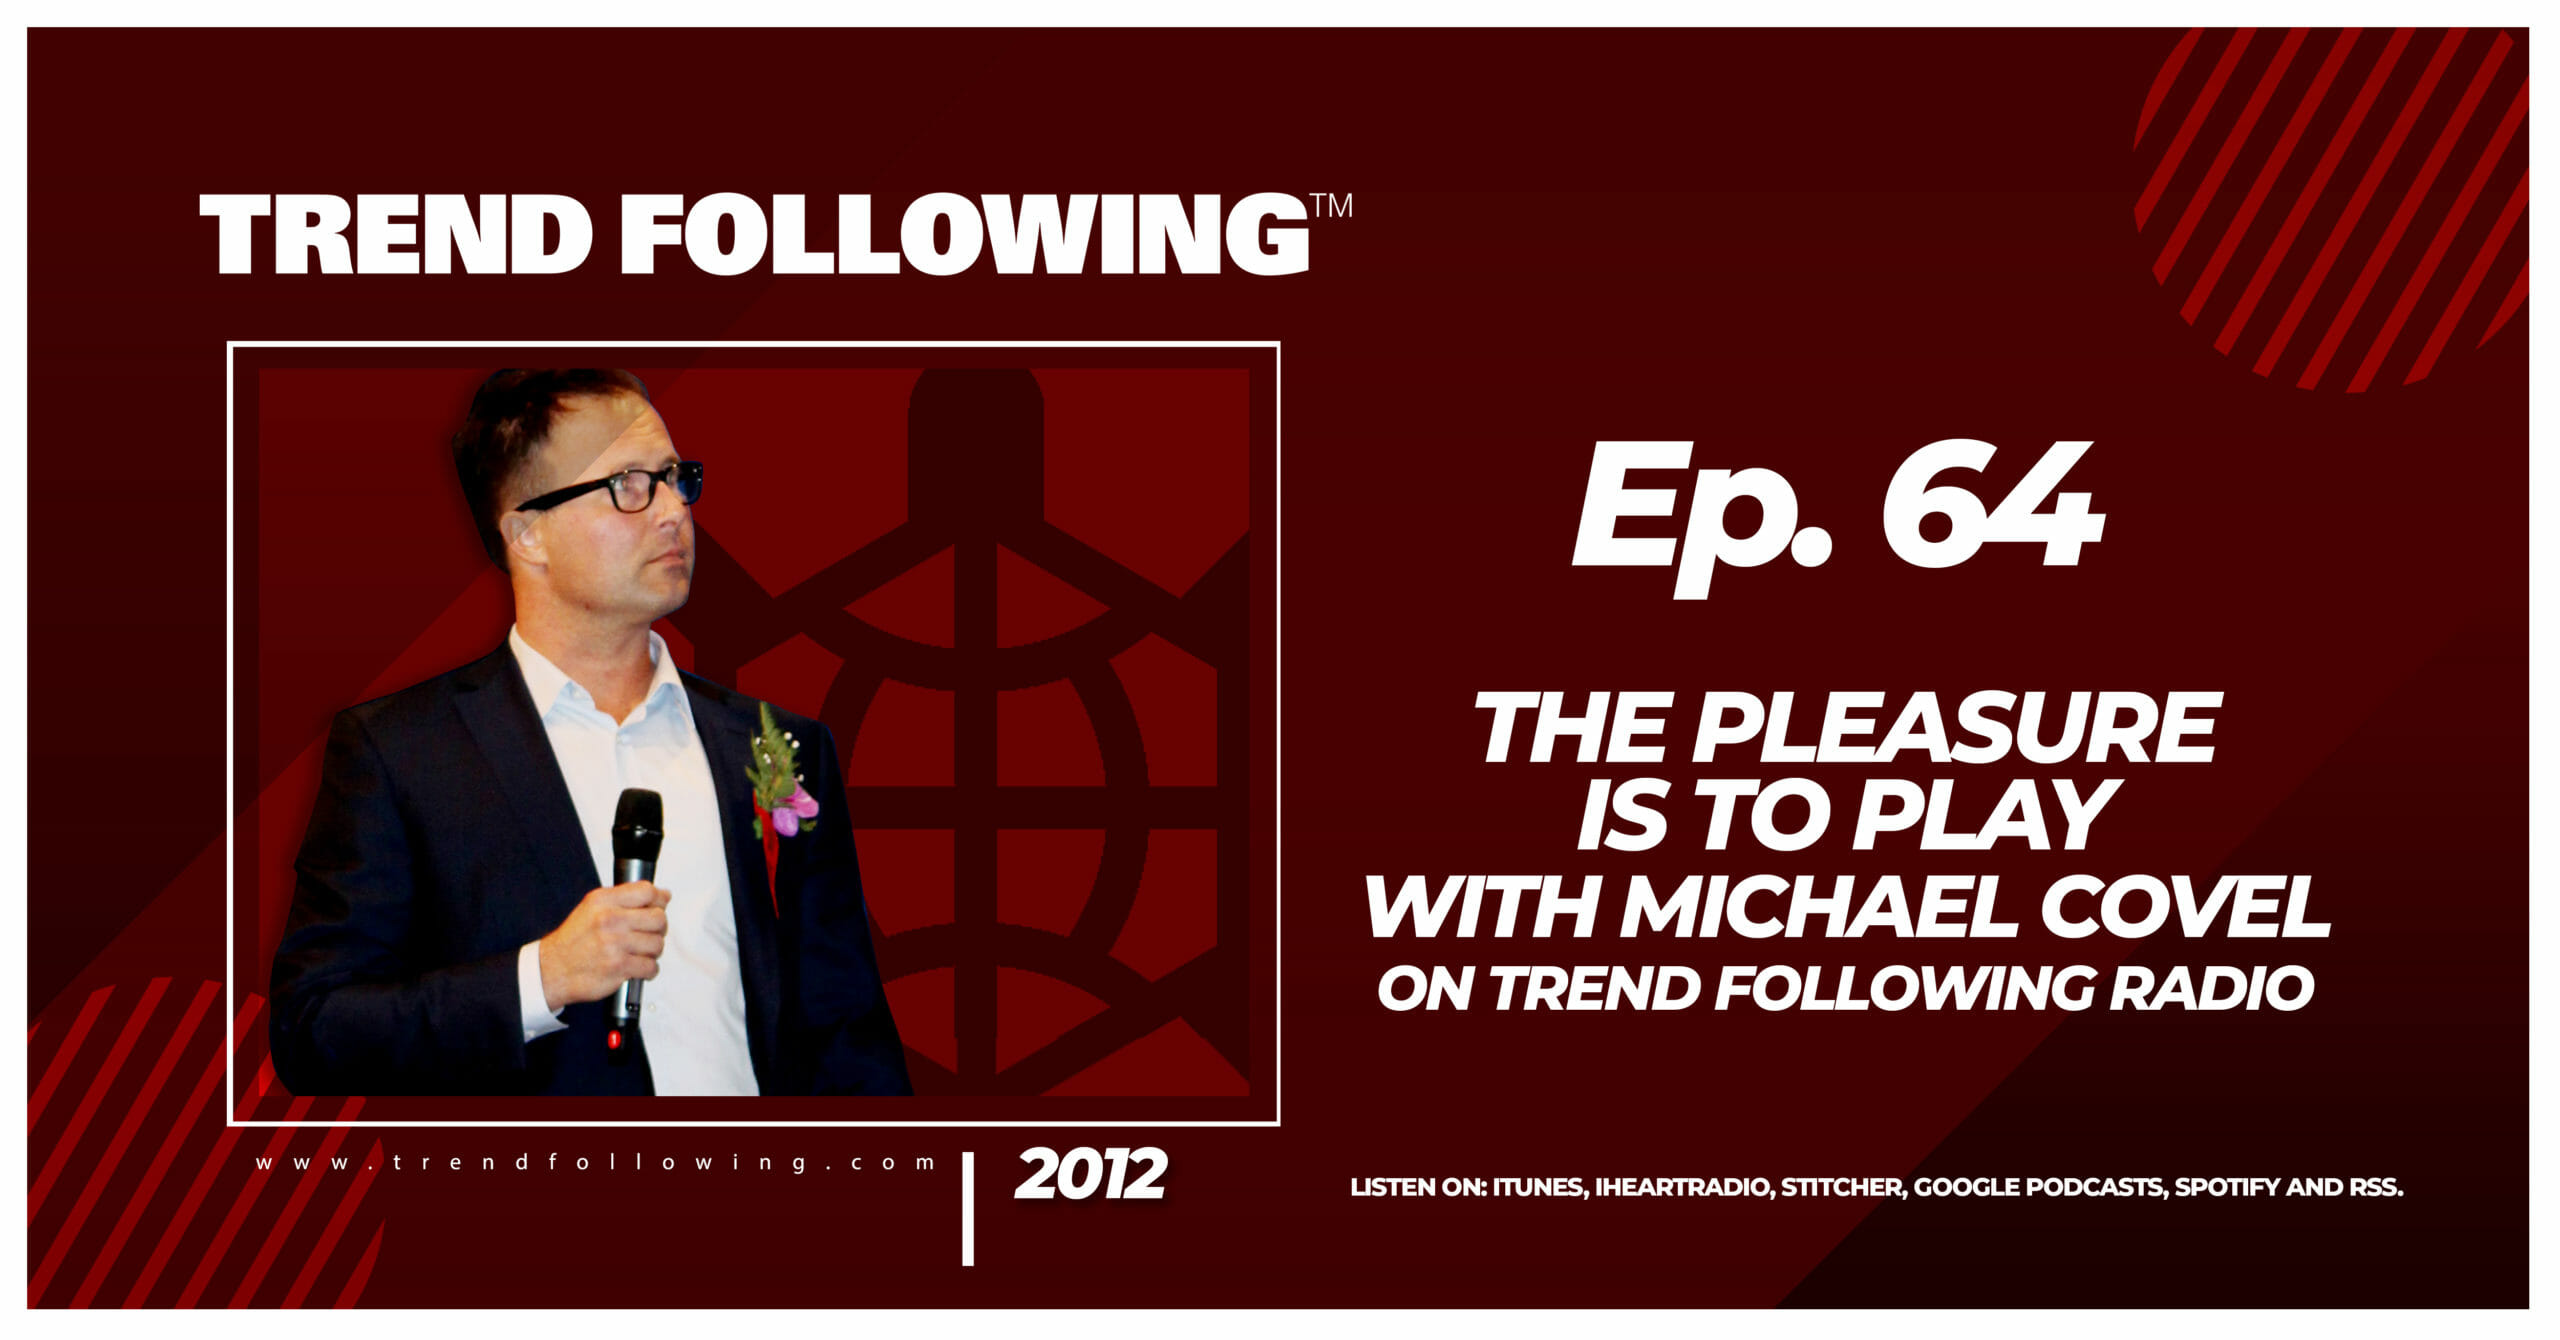 The Pleasure is to Play with Michael Covel on Trend Following Radio